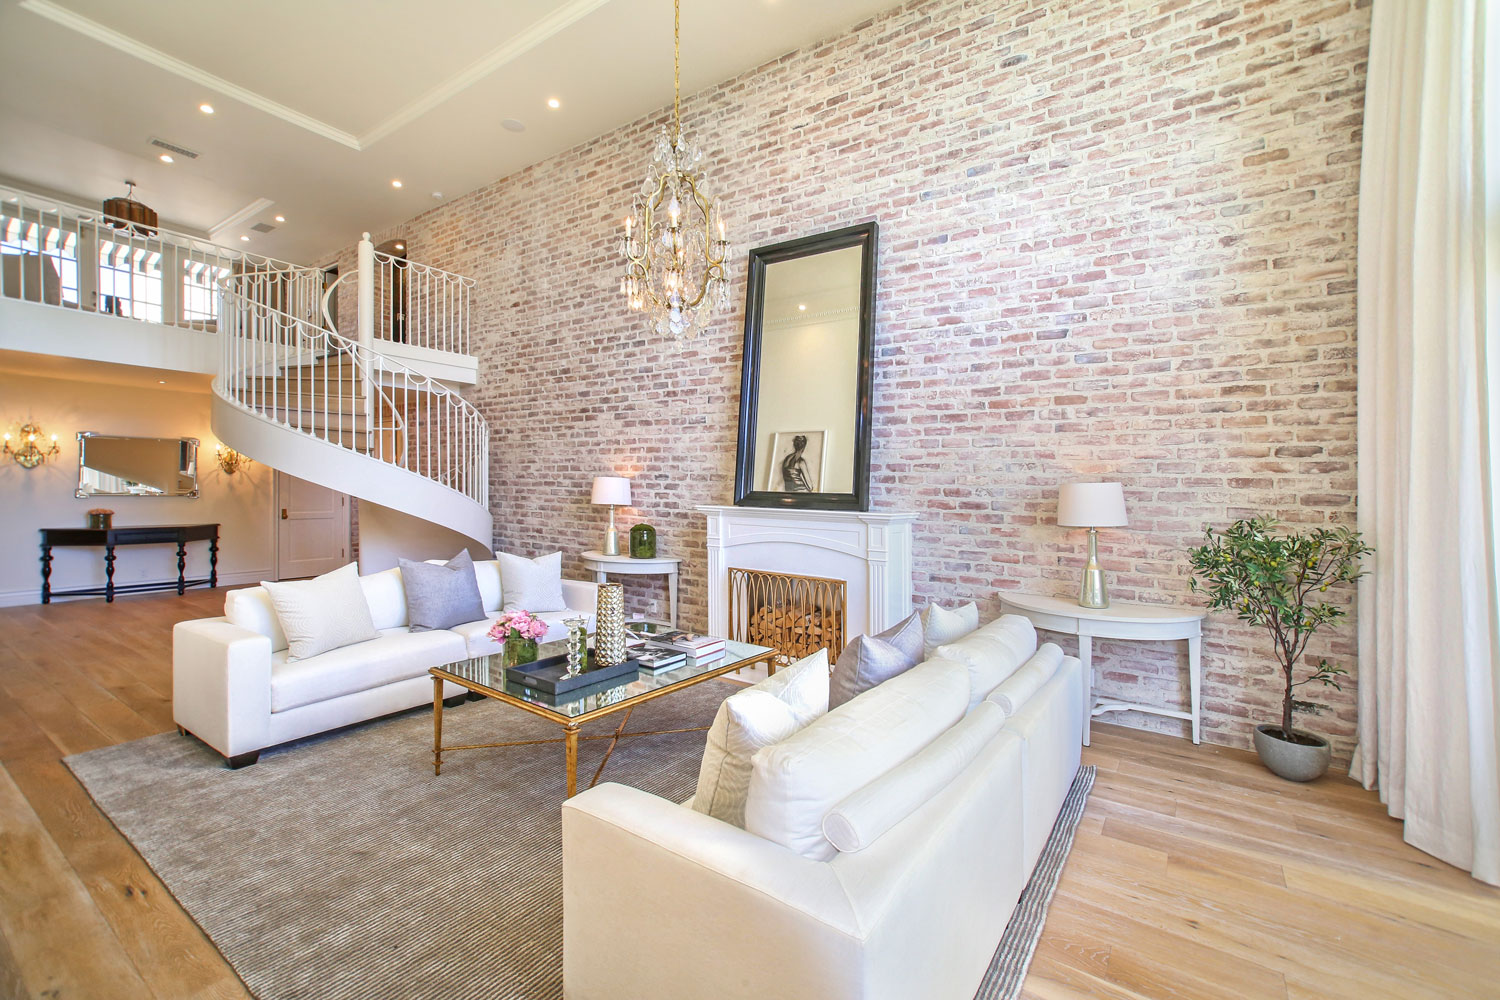 01-exposed-brick-walls-spiral-staircase-wide-plank-floors-gary-drake-general-contractor.jpg